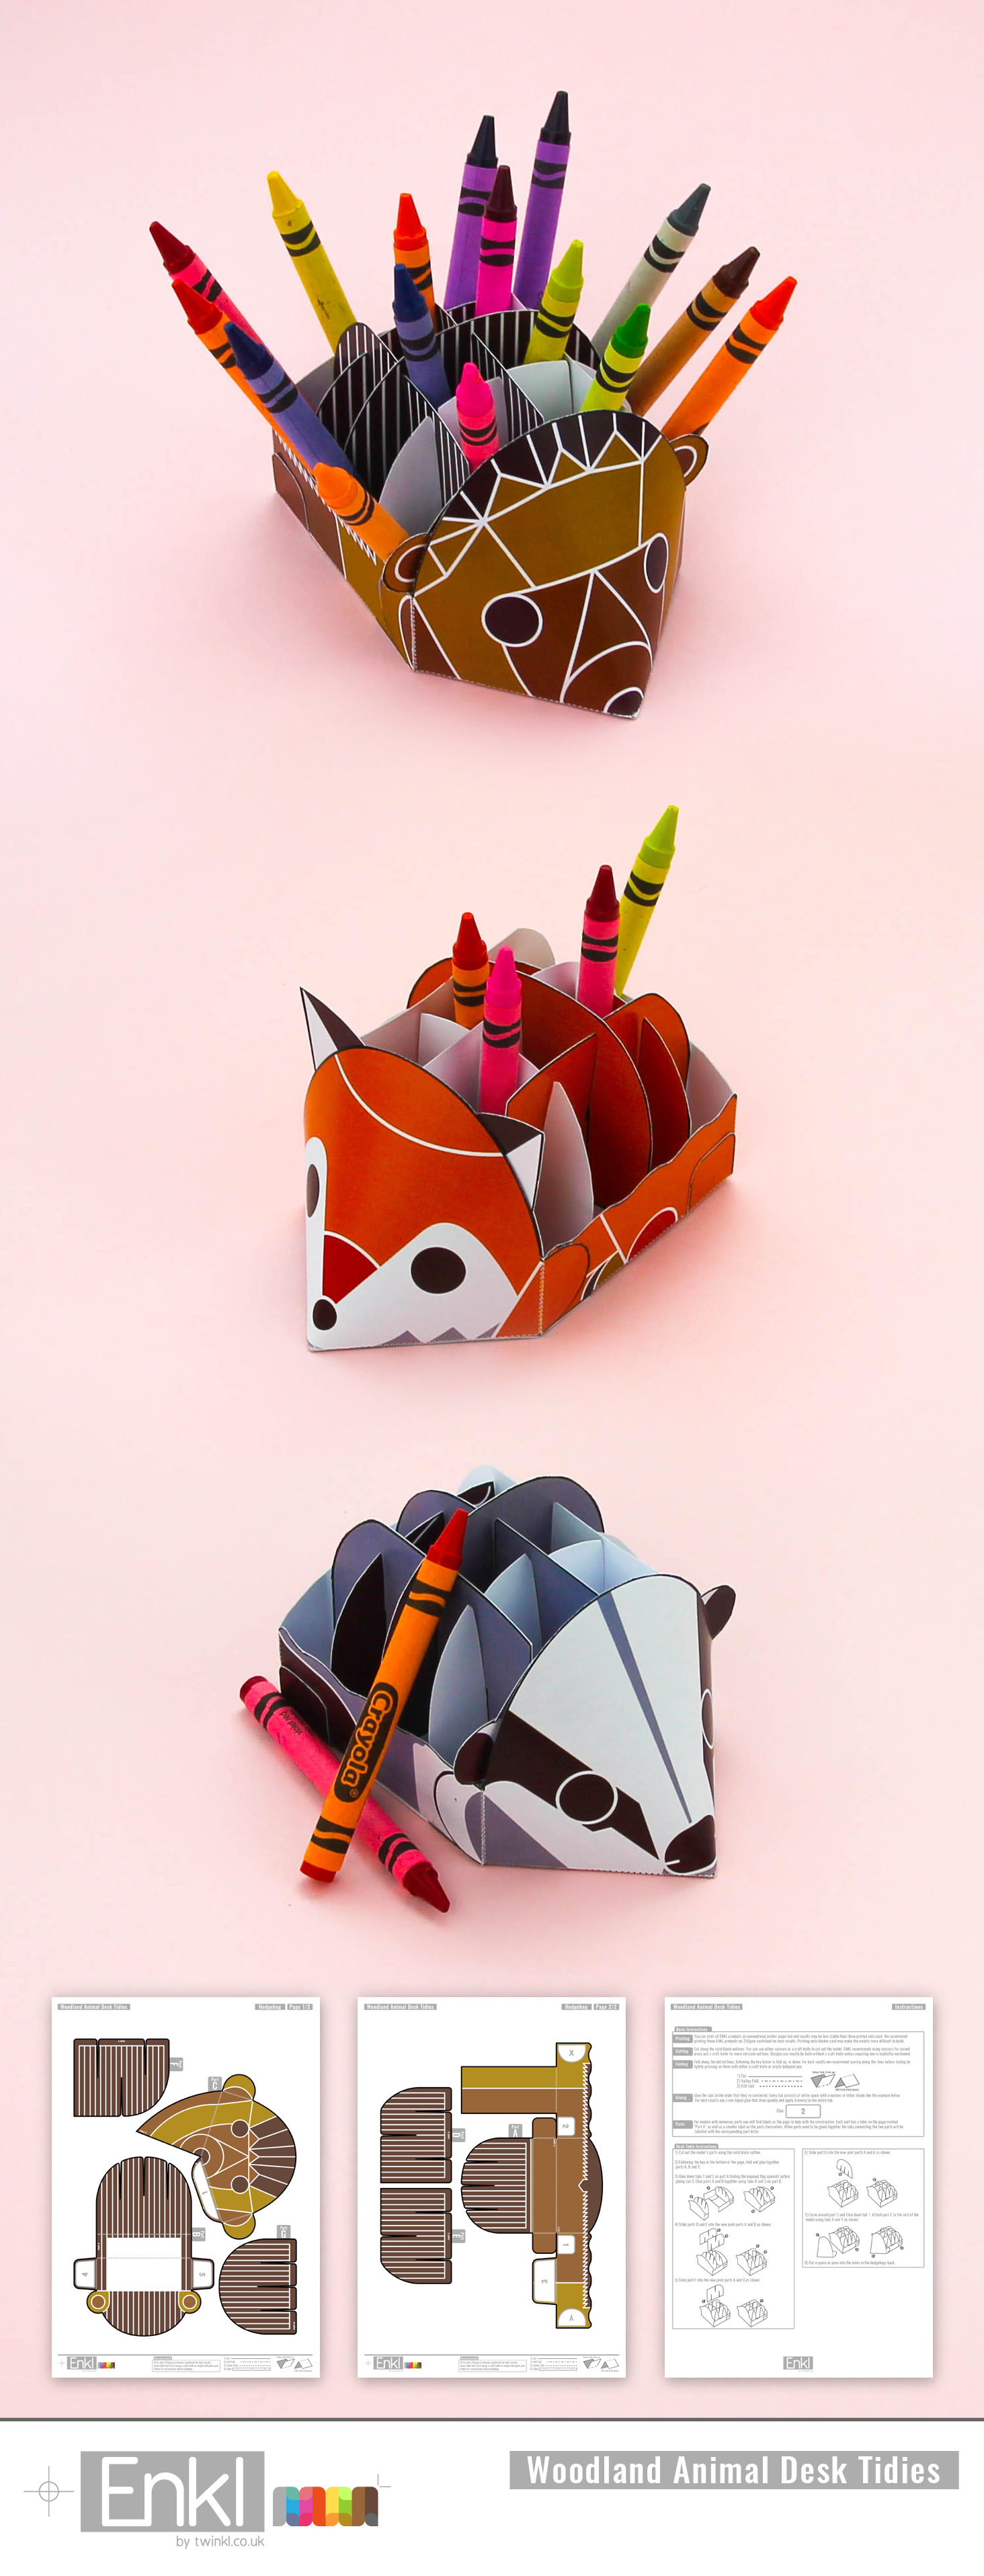 Desktop Toys For Grown Ups : Enkl woodland animals desk tidies make your own cute